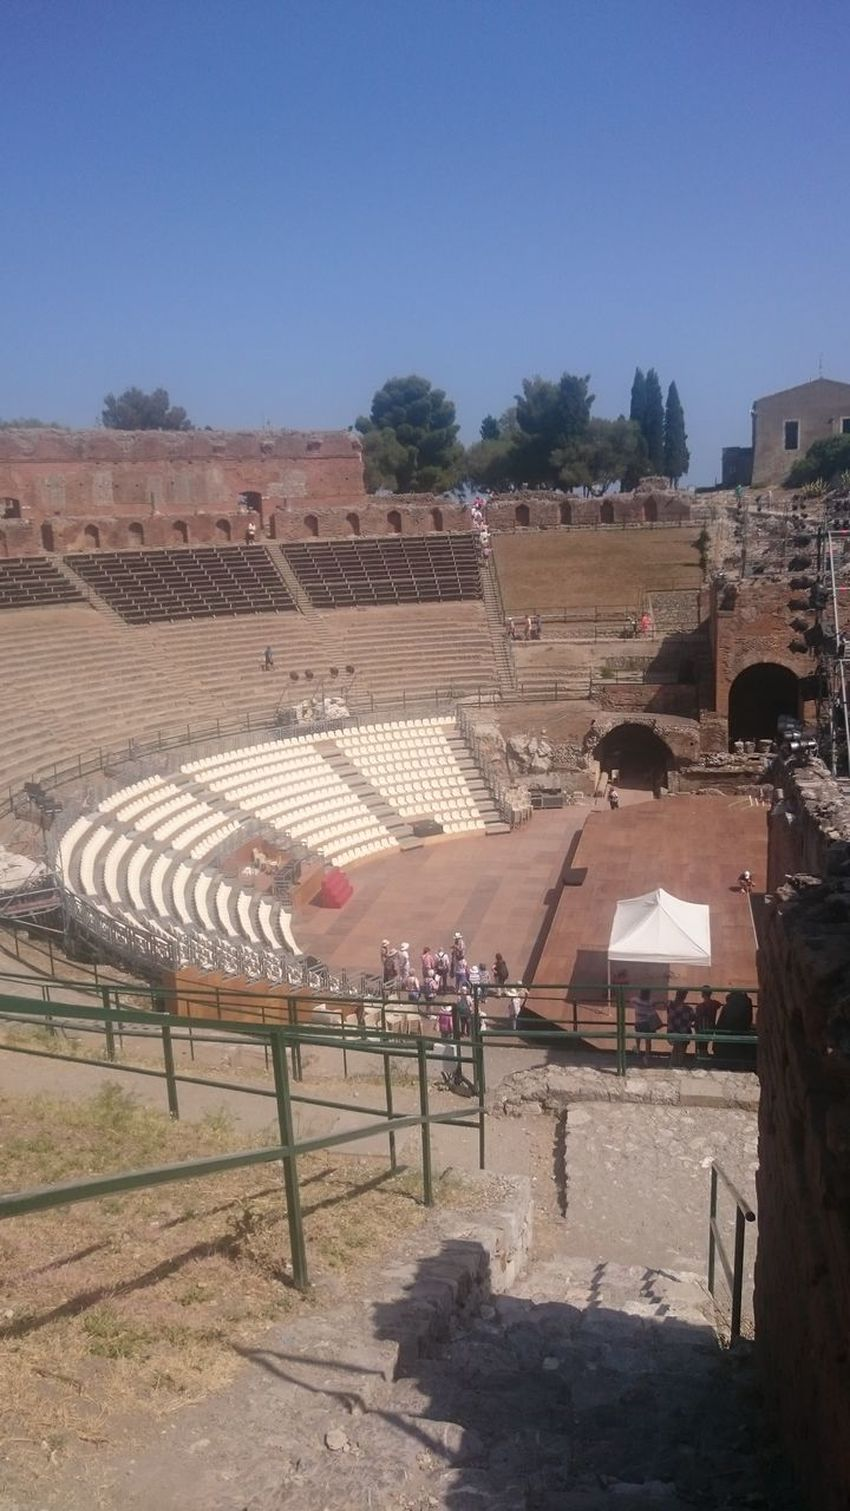 Taormina Teatro Antico Di Taormina Outdoors Stadium People